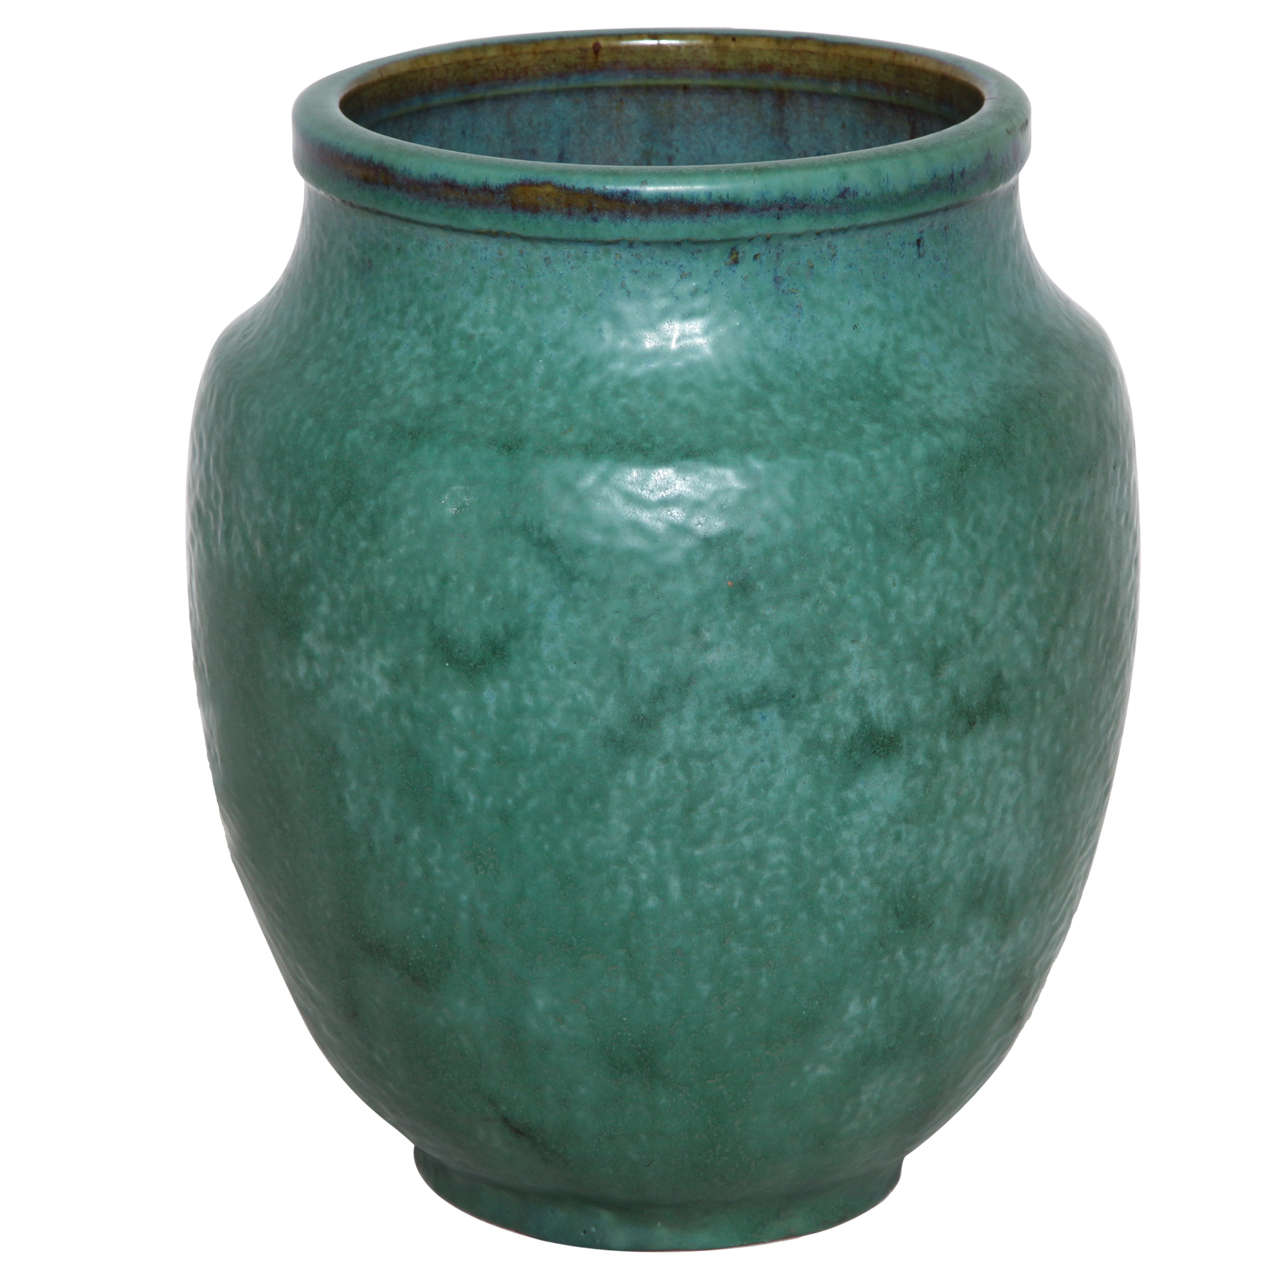 Emile Decoeur French Art Deco Green Stoneware Vase For Sale